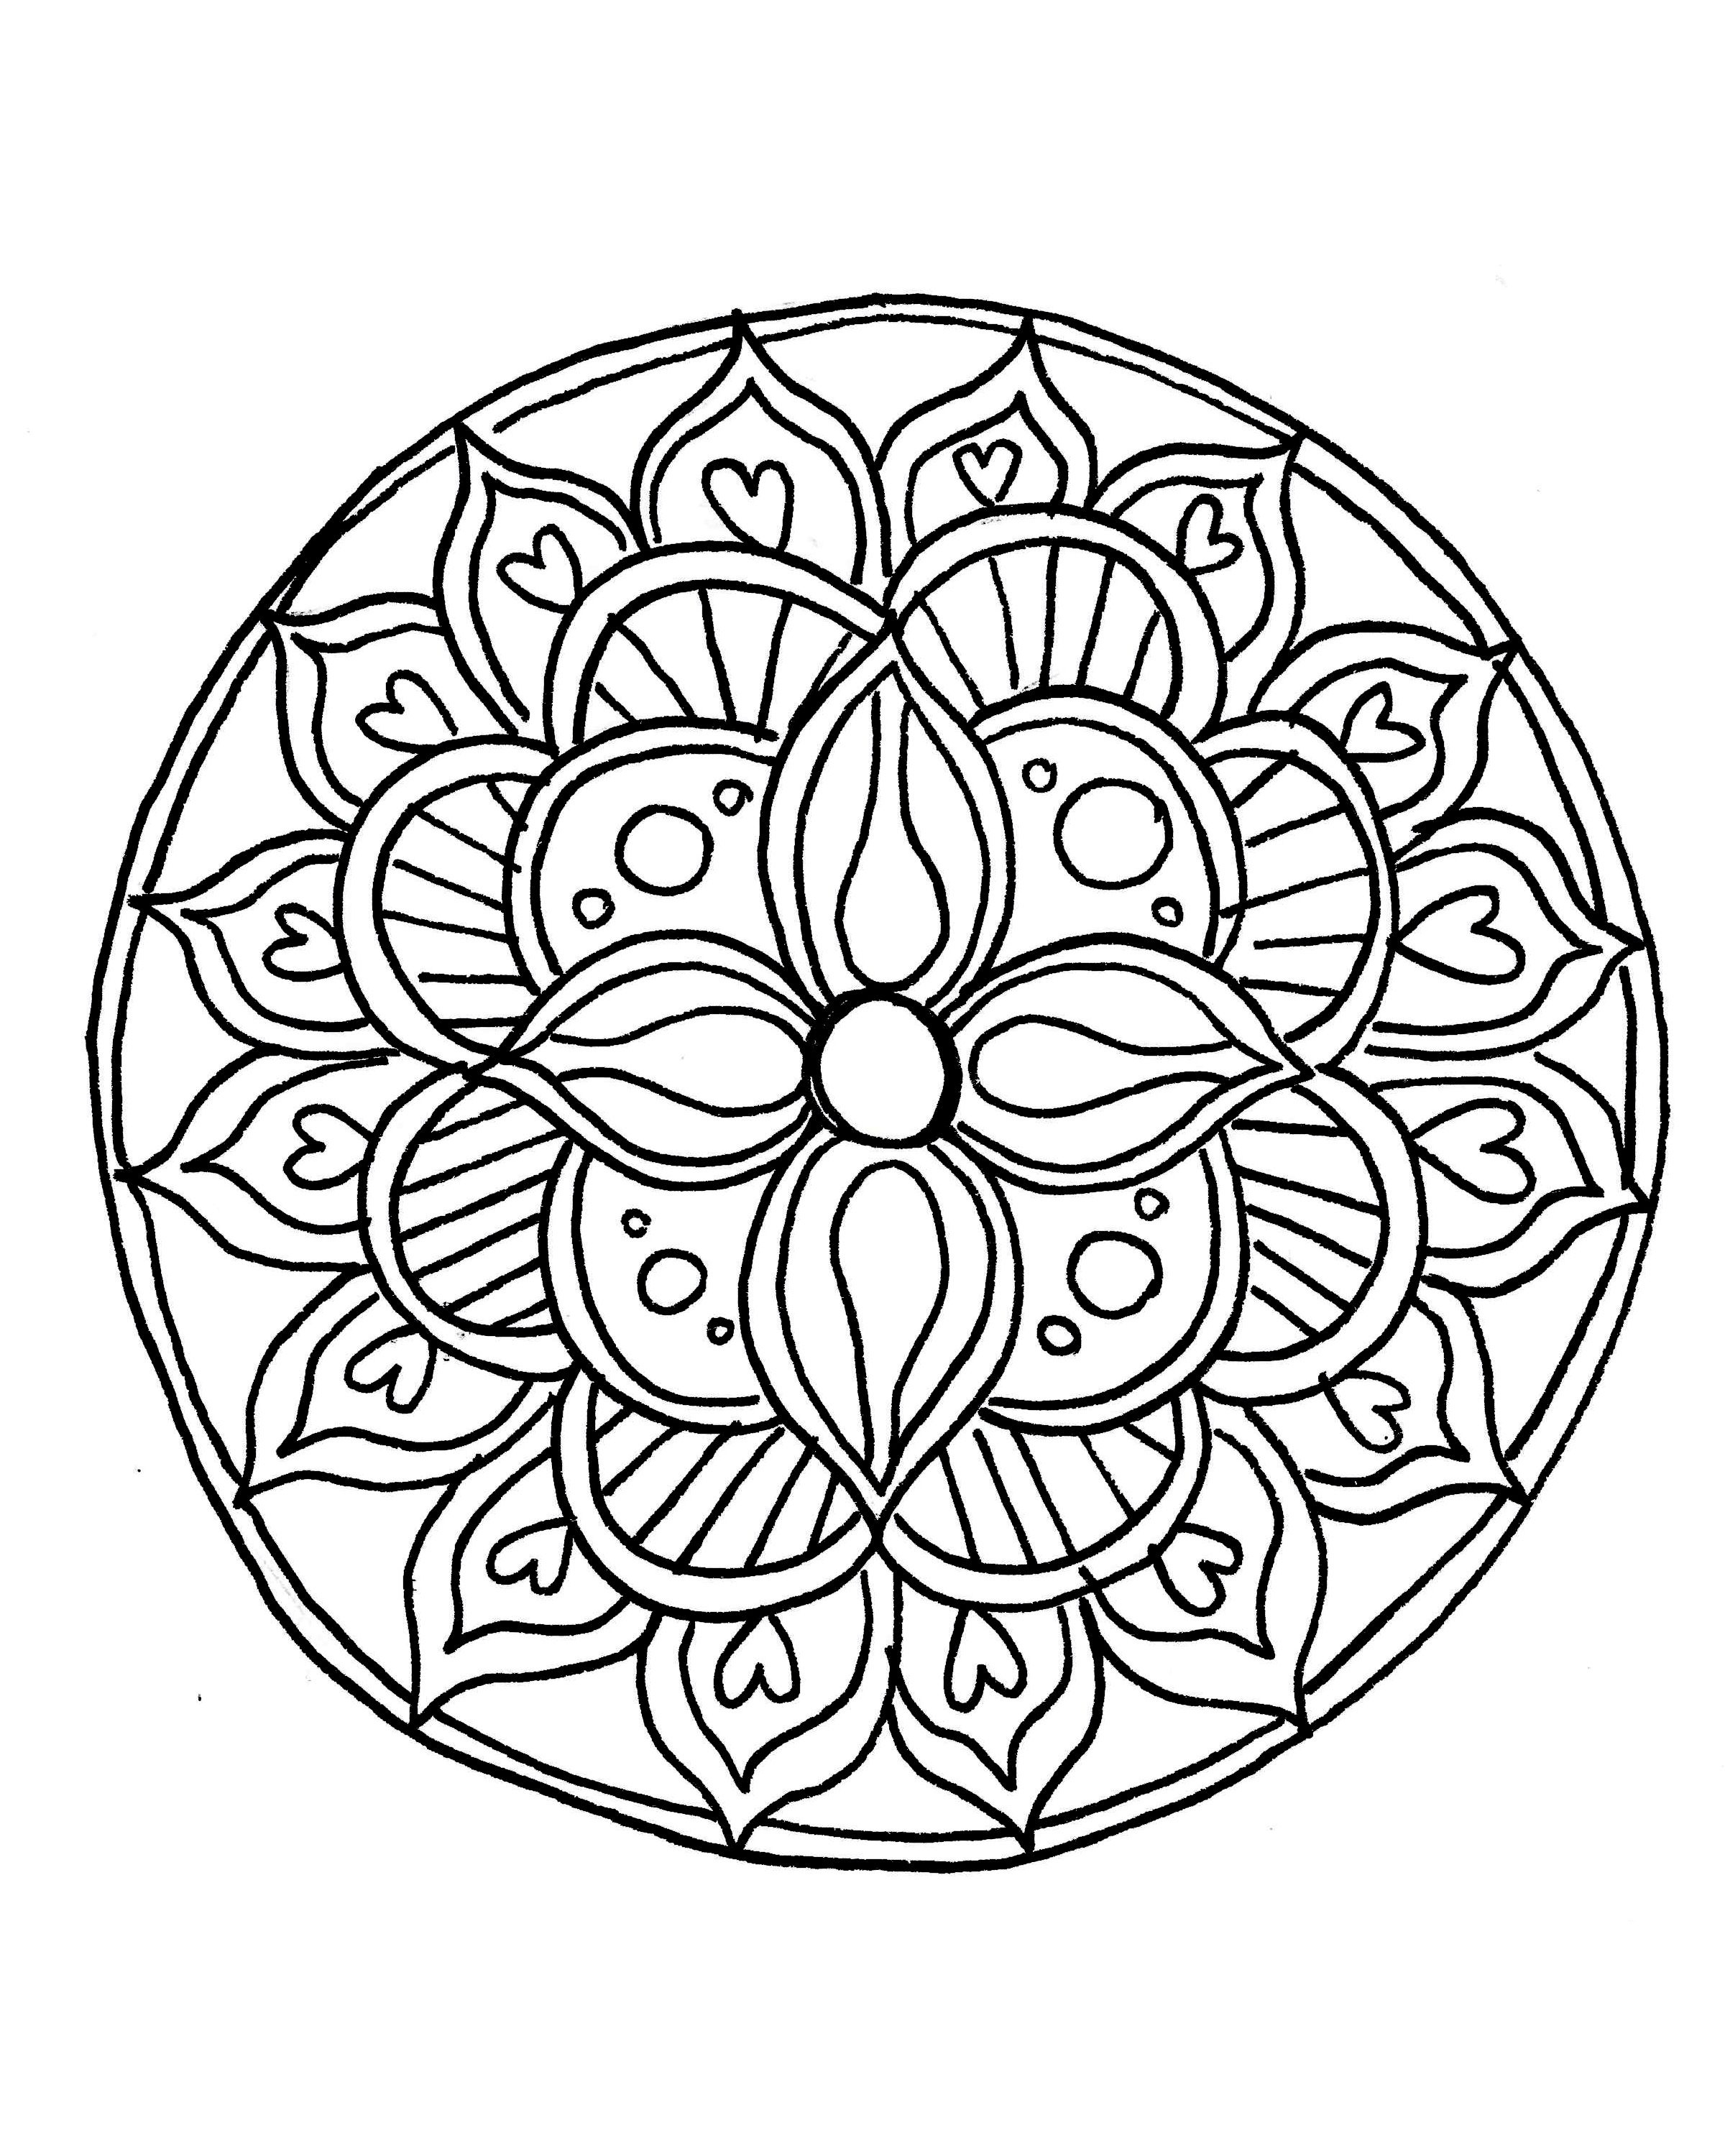 How To Draw A Mandala (With Free Coloring Pages!) | Drawings - Free Printable Mandala Patterns